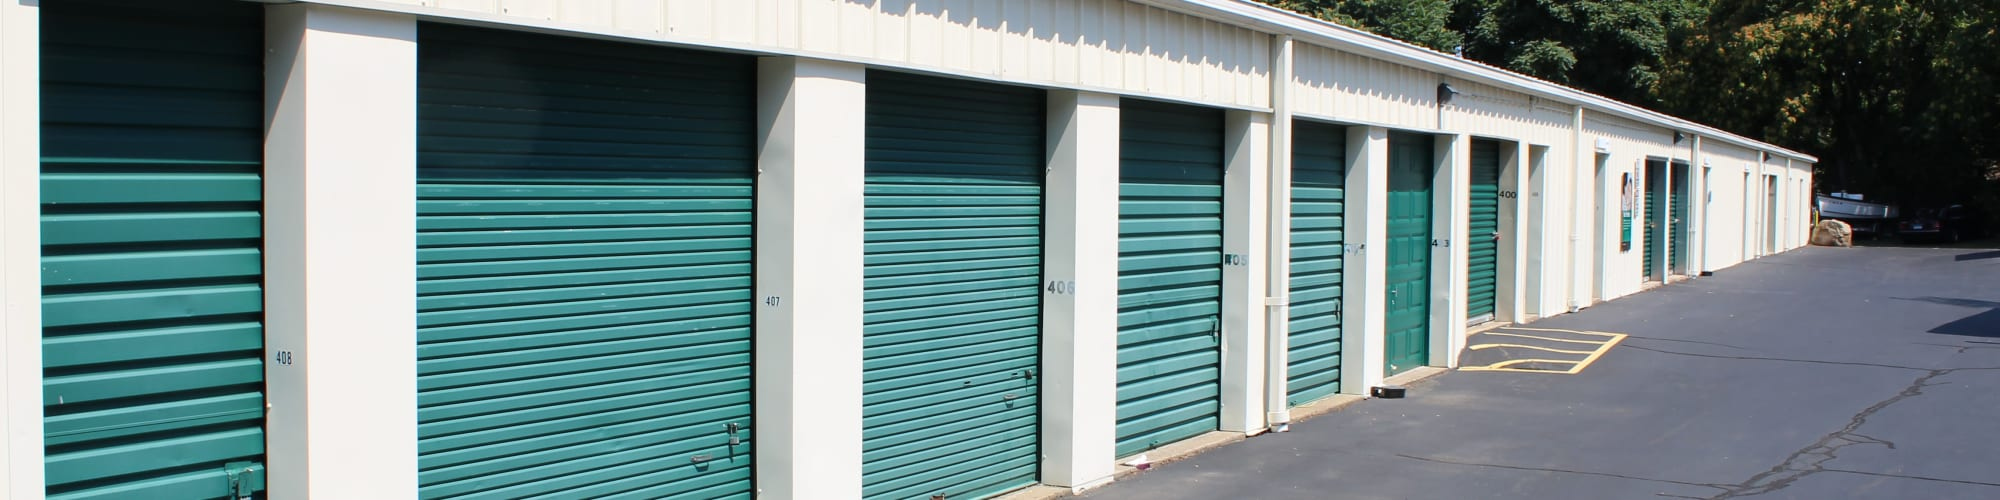 Features at Global Self Storage in Clinton, Connecticut